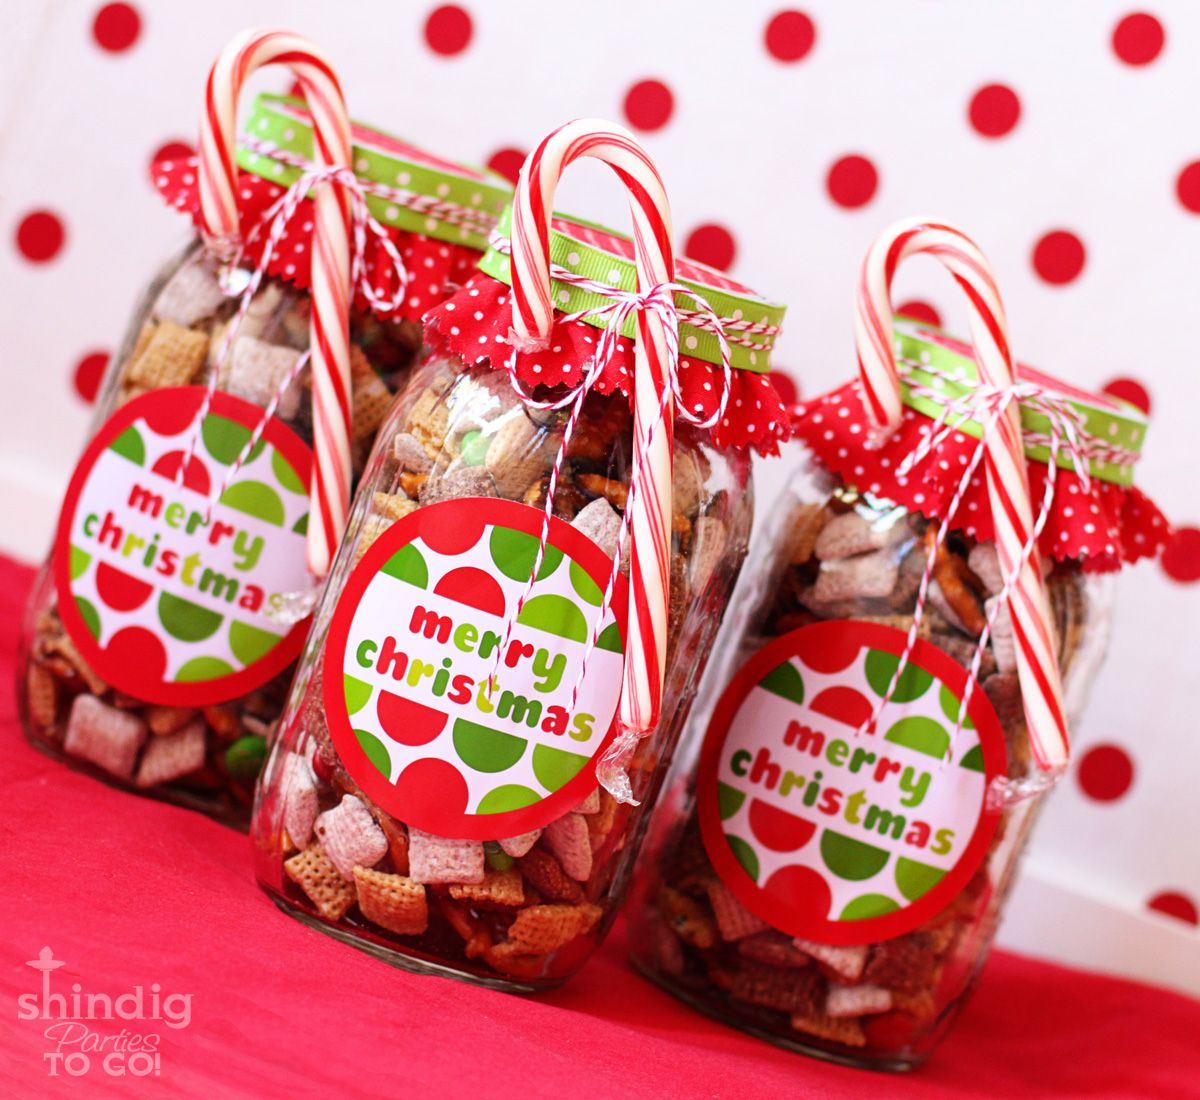 Good Free Gift Ideas For Christmas Part - 5: Amandau0027s Parties TO GO: FREE Merry Christmas Tags And Gift Idea